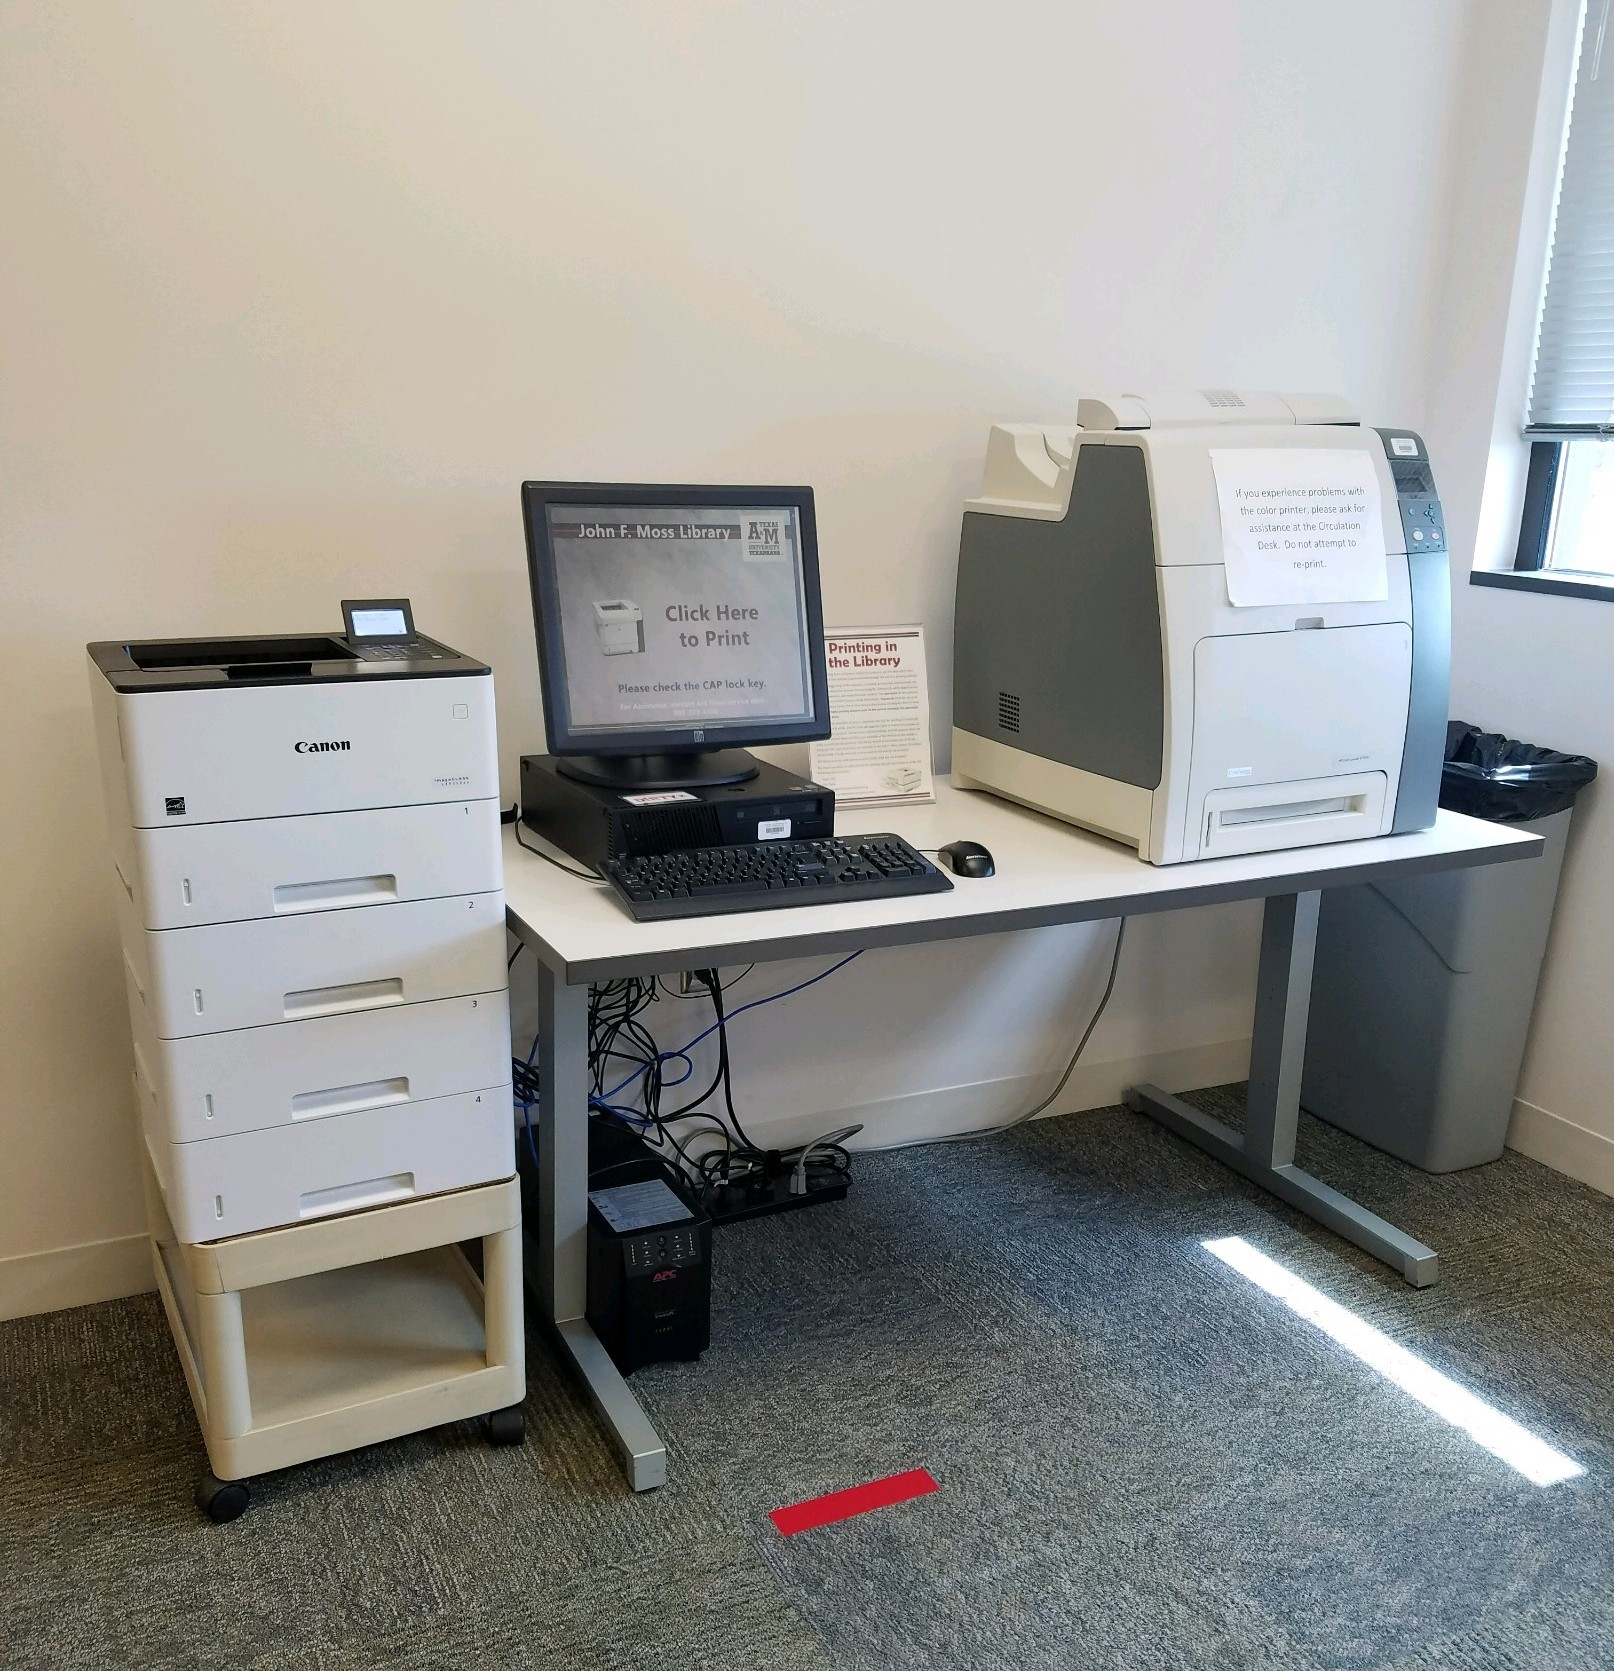 printer and monitor on desk